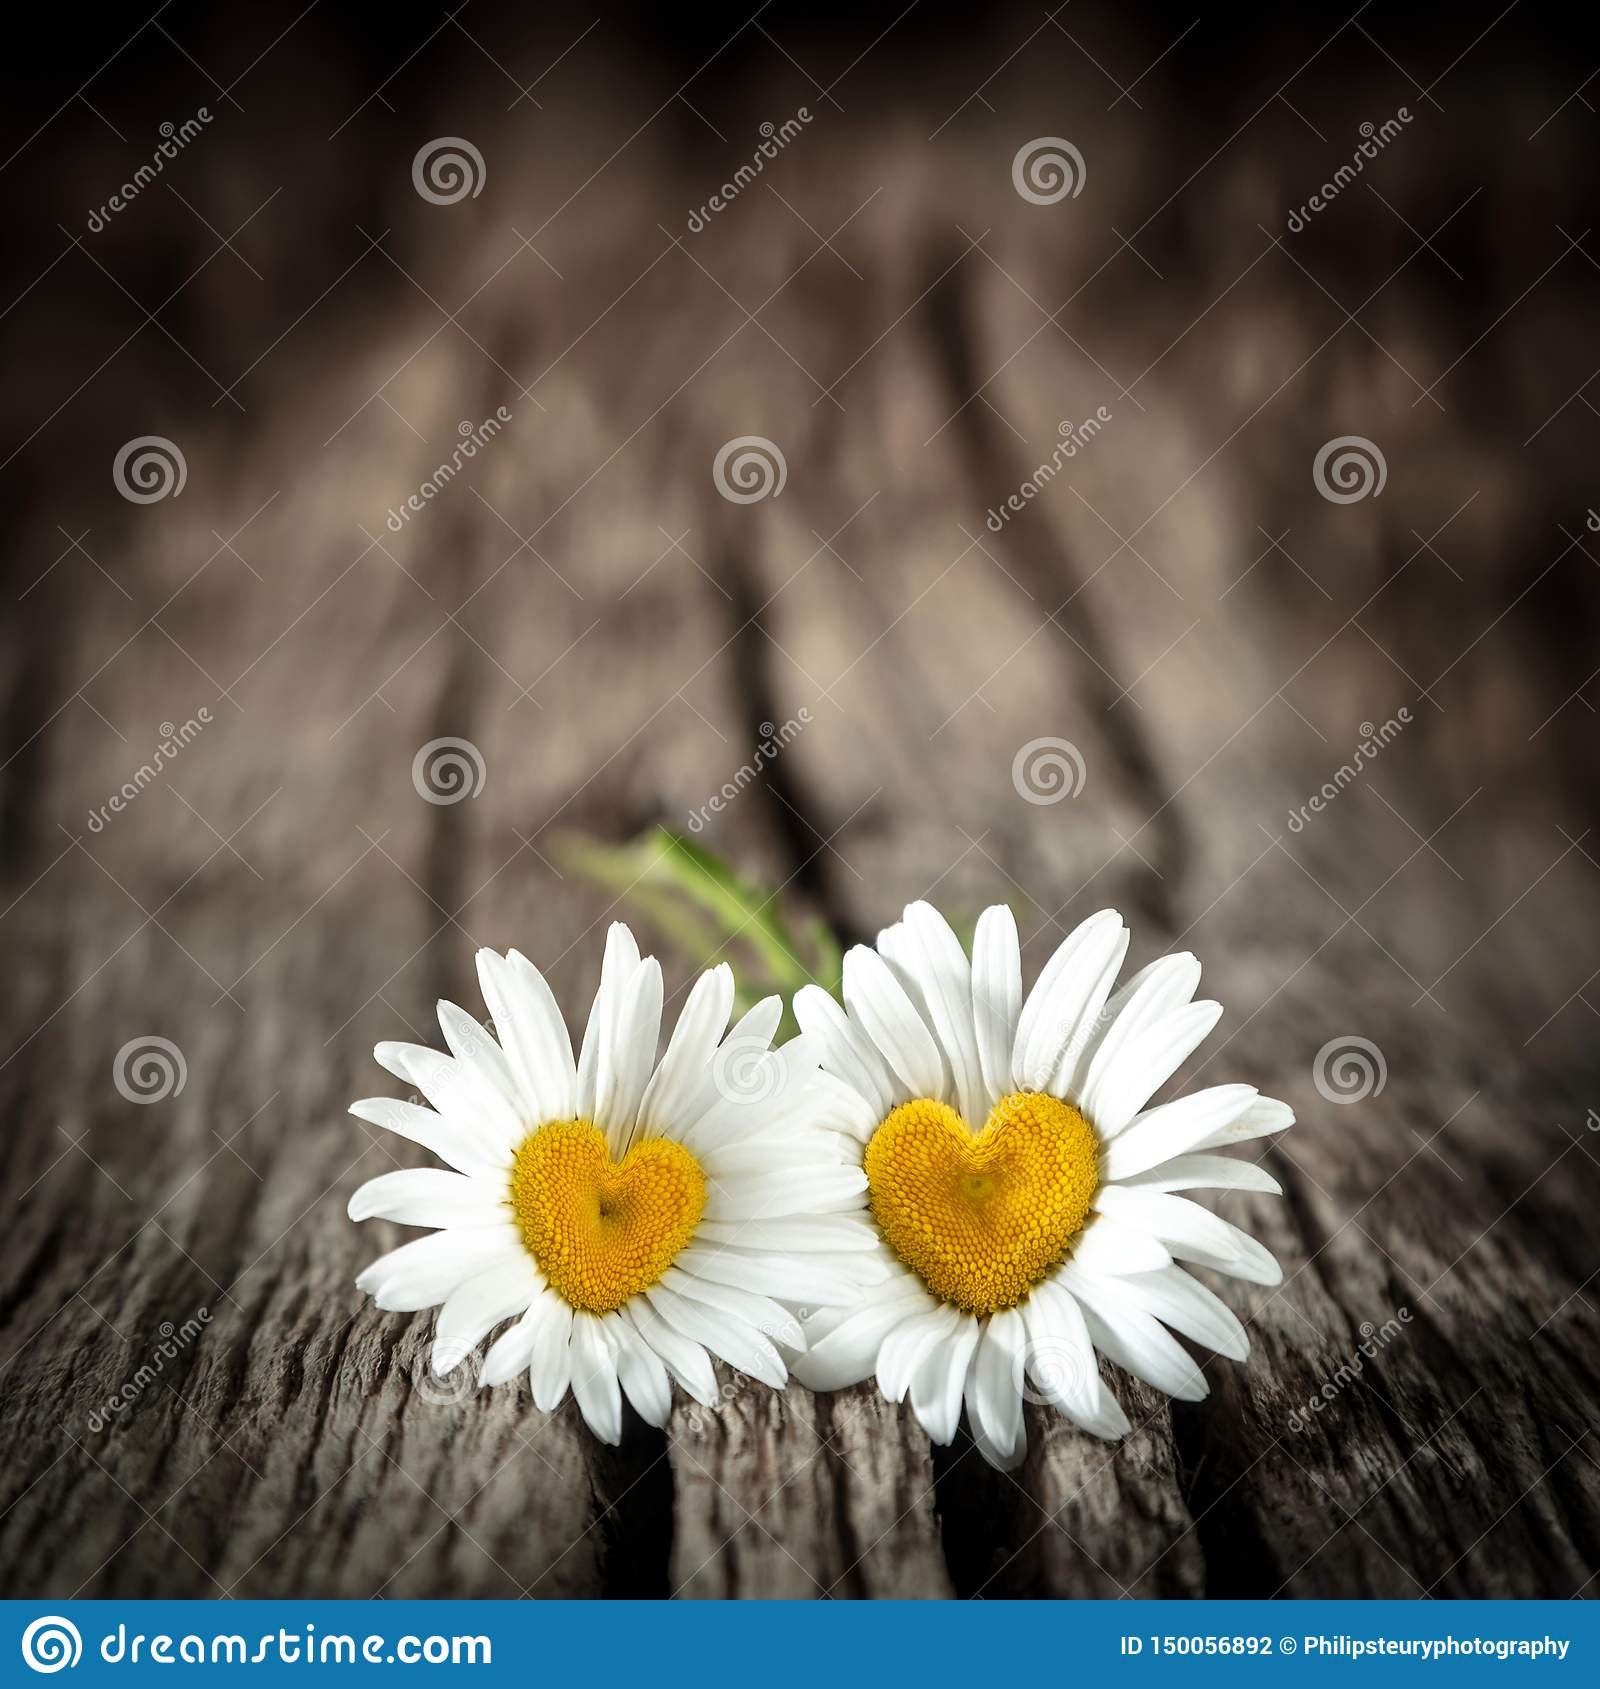 Two Daisies With Heart Shaped Centers